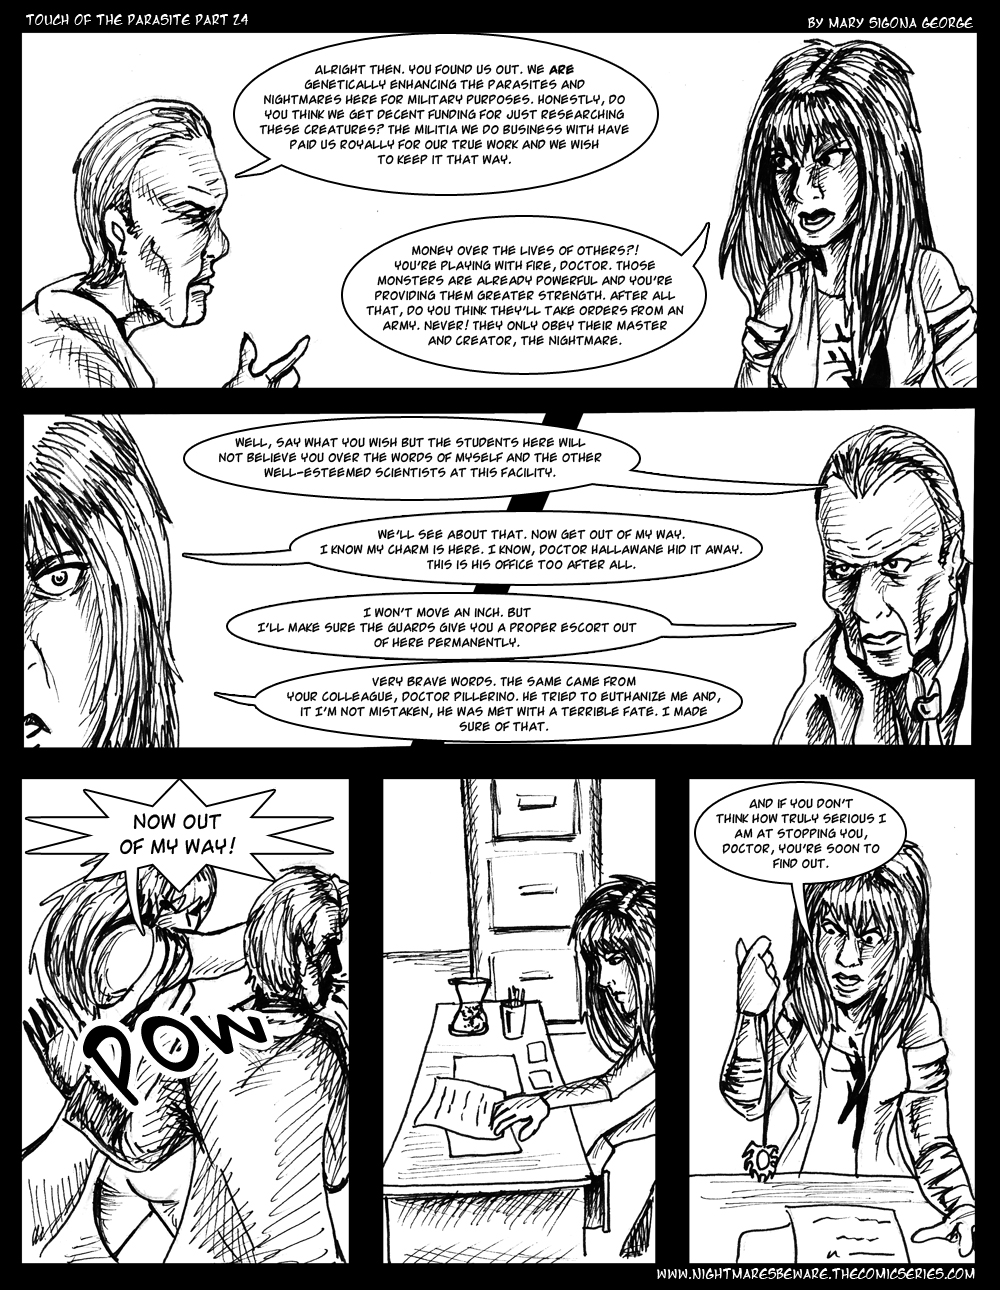 Touch of the Parasite: Part 24